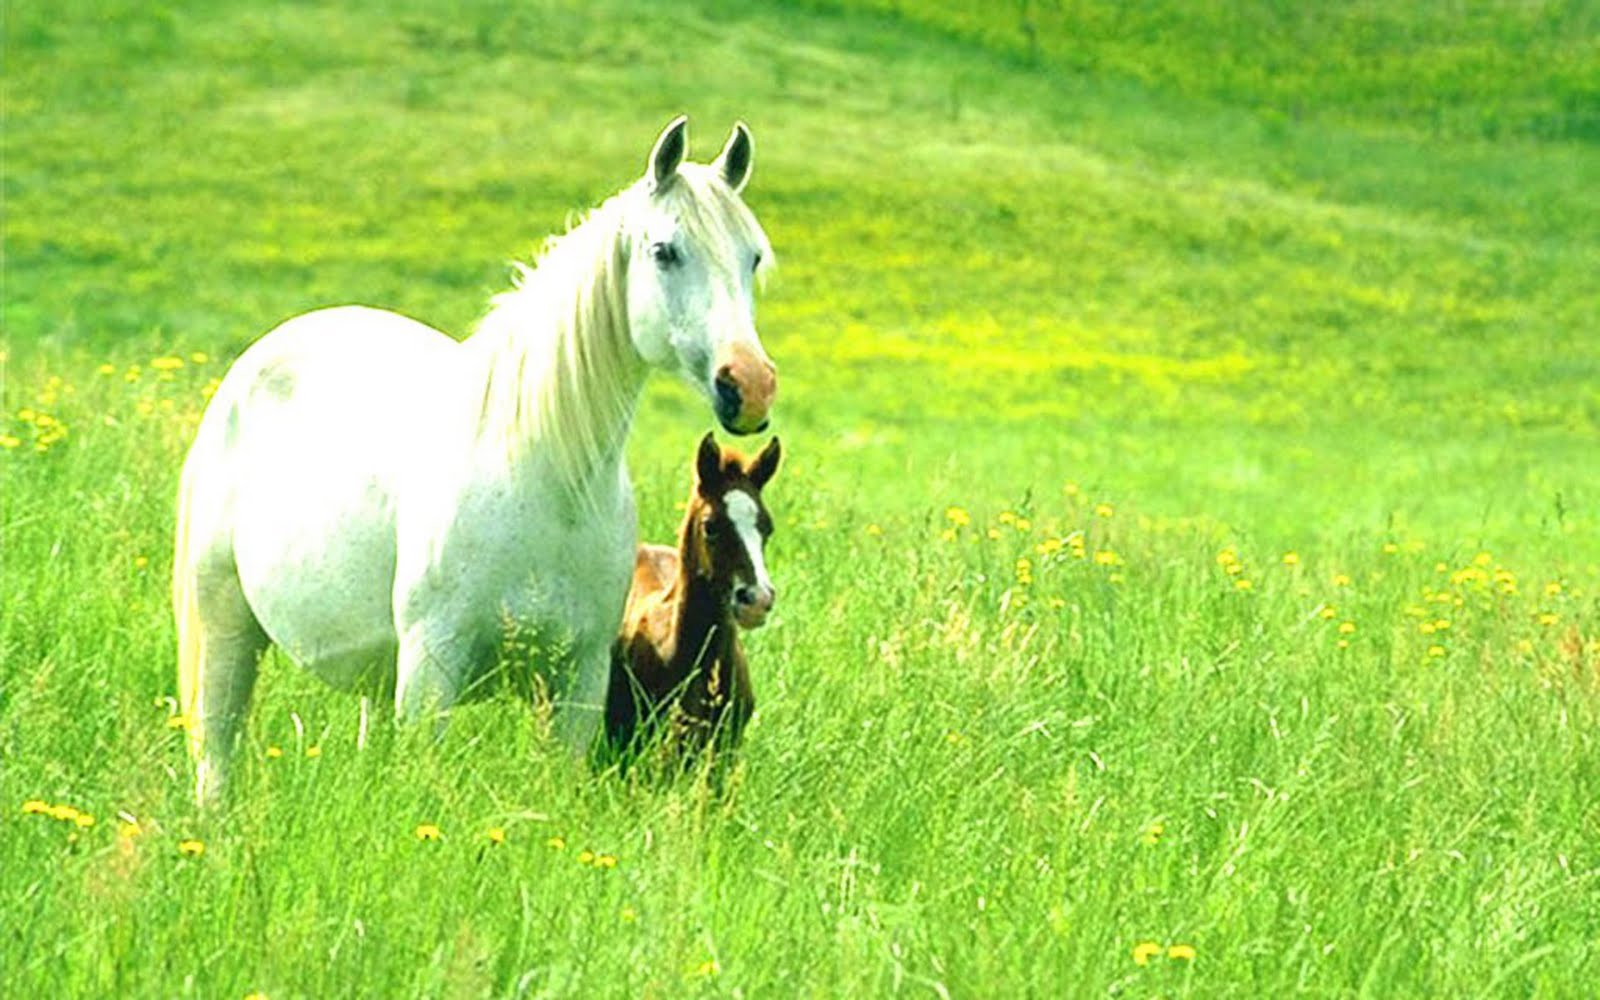 http://1.bp.blogspot.com/-hnwwPoSAiNc/TcGVJFSCCOI/AAAAAAAAAV4/ciF4WHS_bgE/s1600/Animals+Wallpapers+About+Horses+and+Ponies.jpg